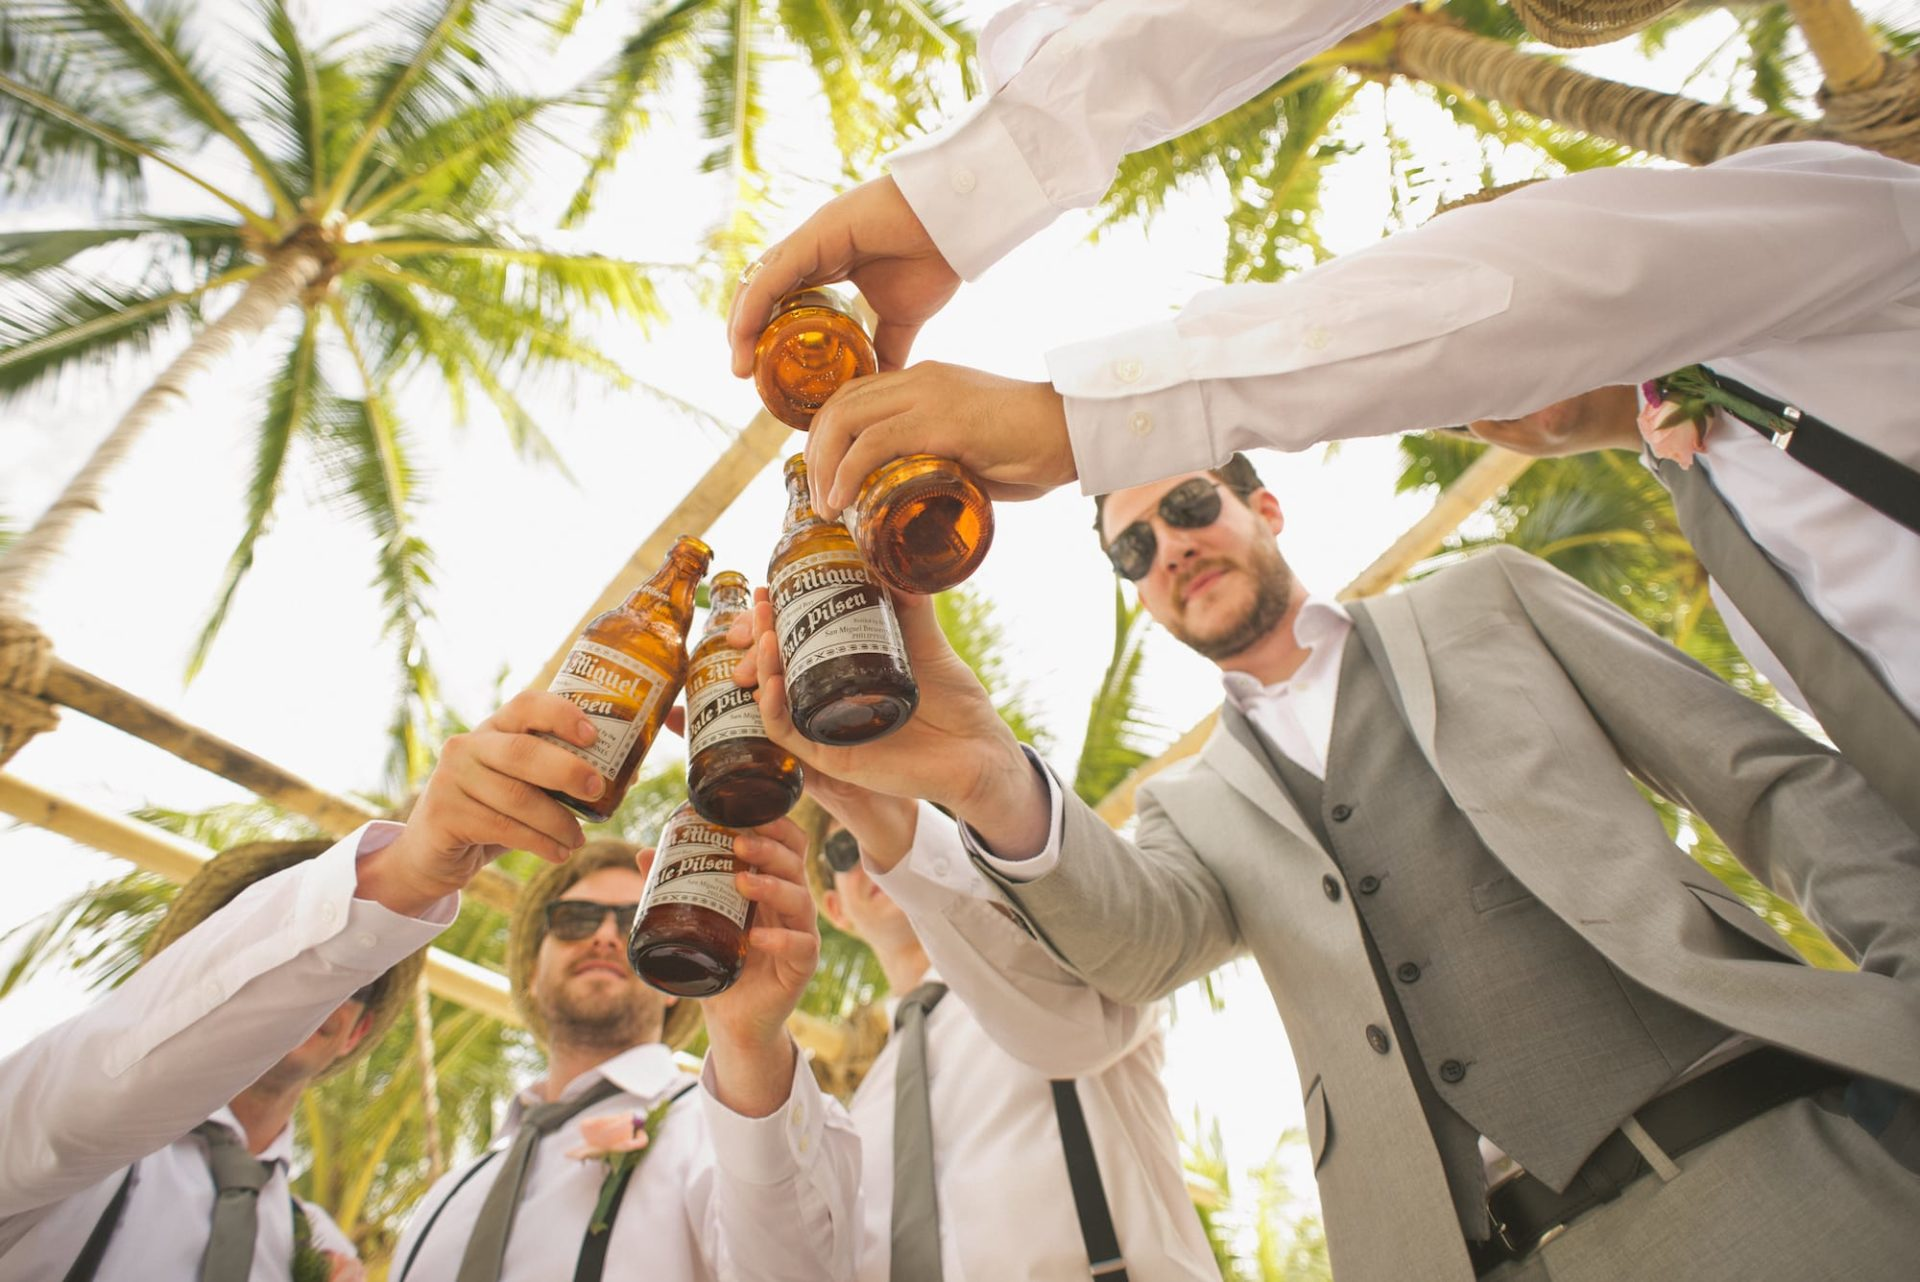 Group of friends celebrating with beer